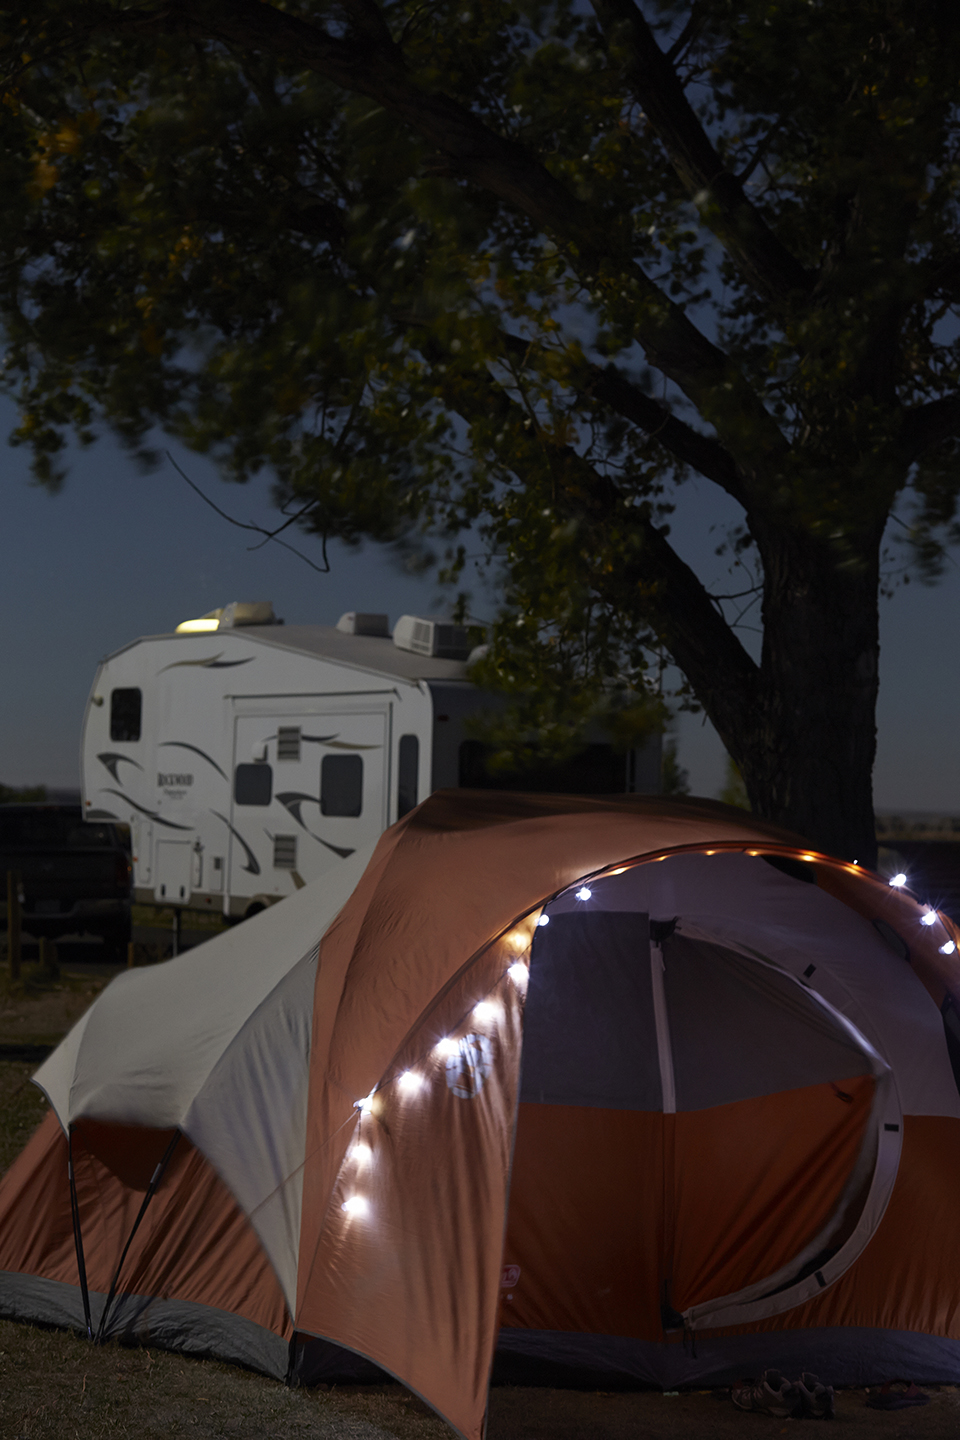 My campsite in the Badlands, South Dakota, from where I shot the photo you see above (the pic prior to this one)